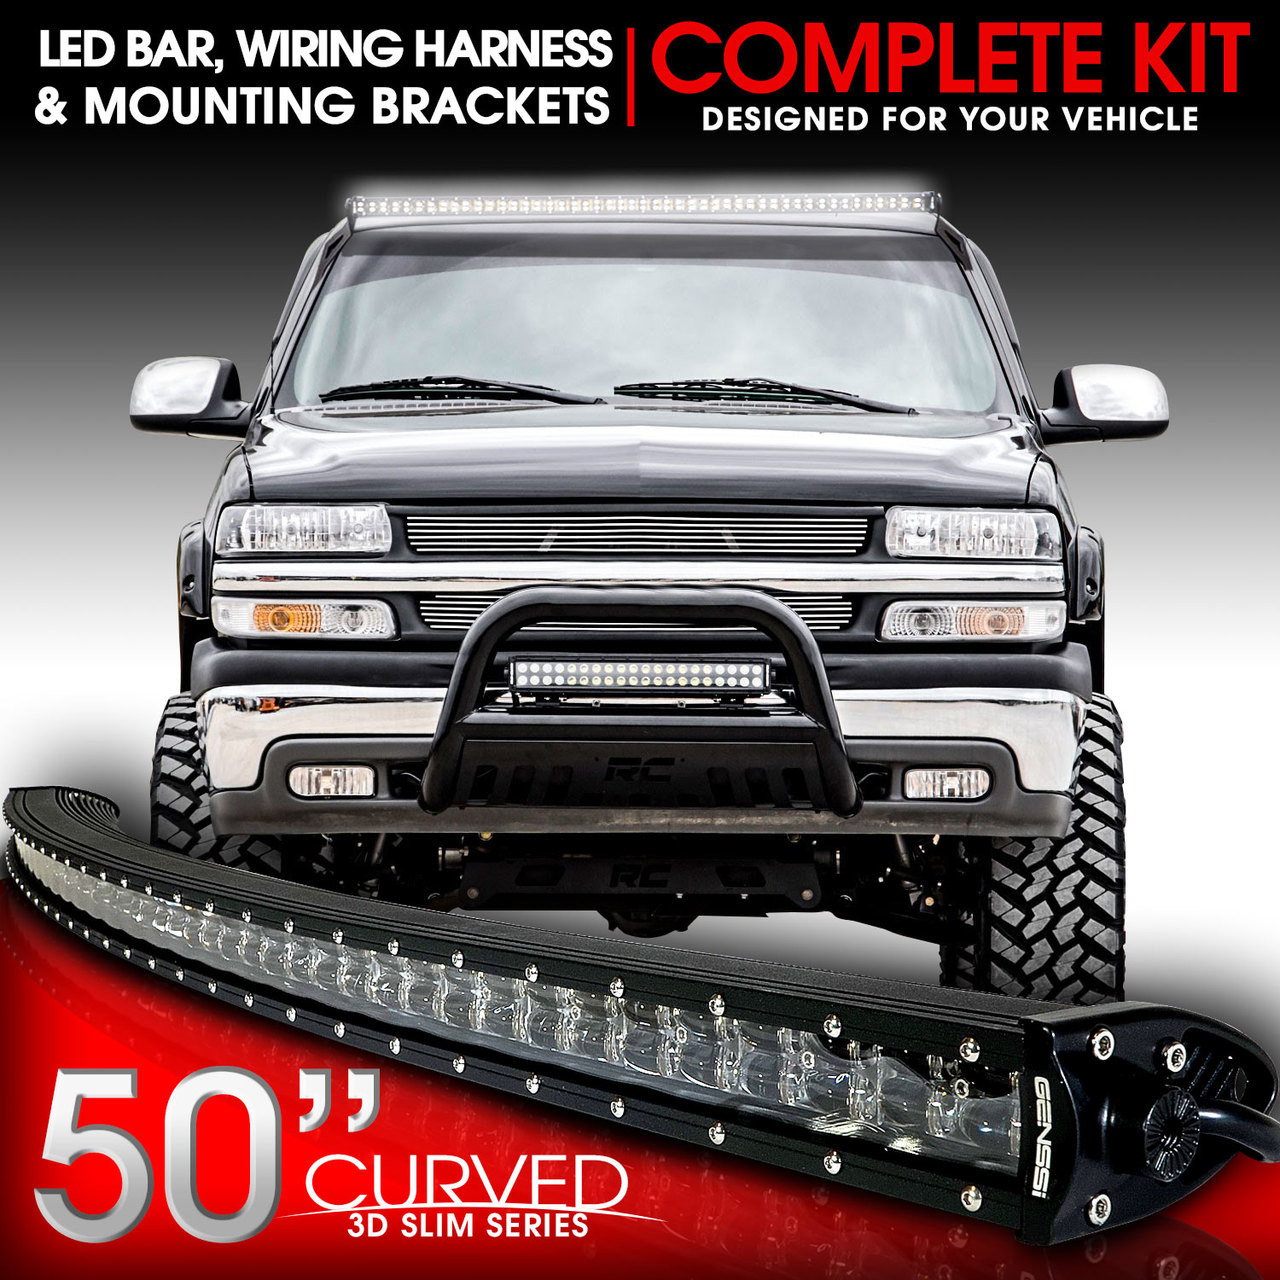 led light bar curved 288w 50 inches bracket wiring harness kit for 2006 silverado light wiring harness [ 1280 x 1280 Pixel ]